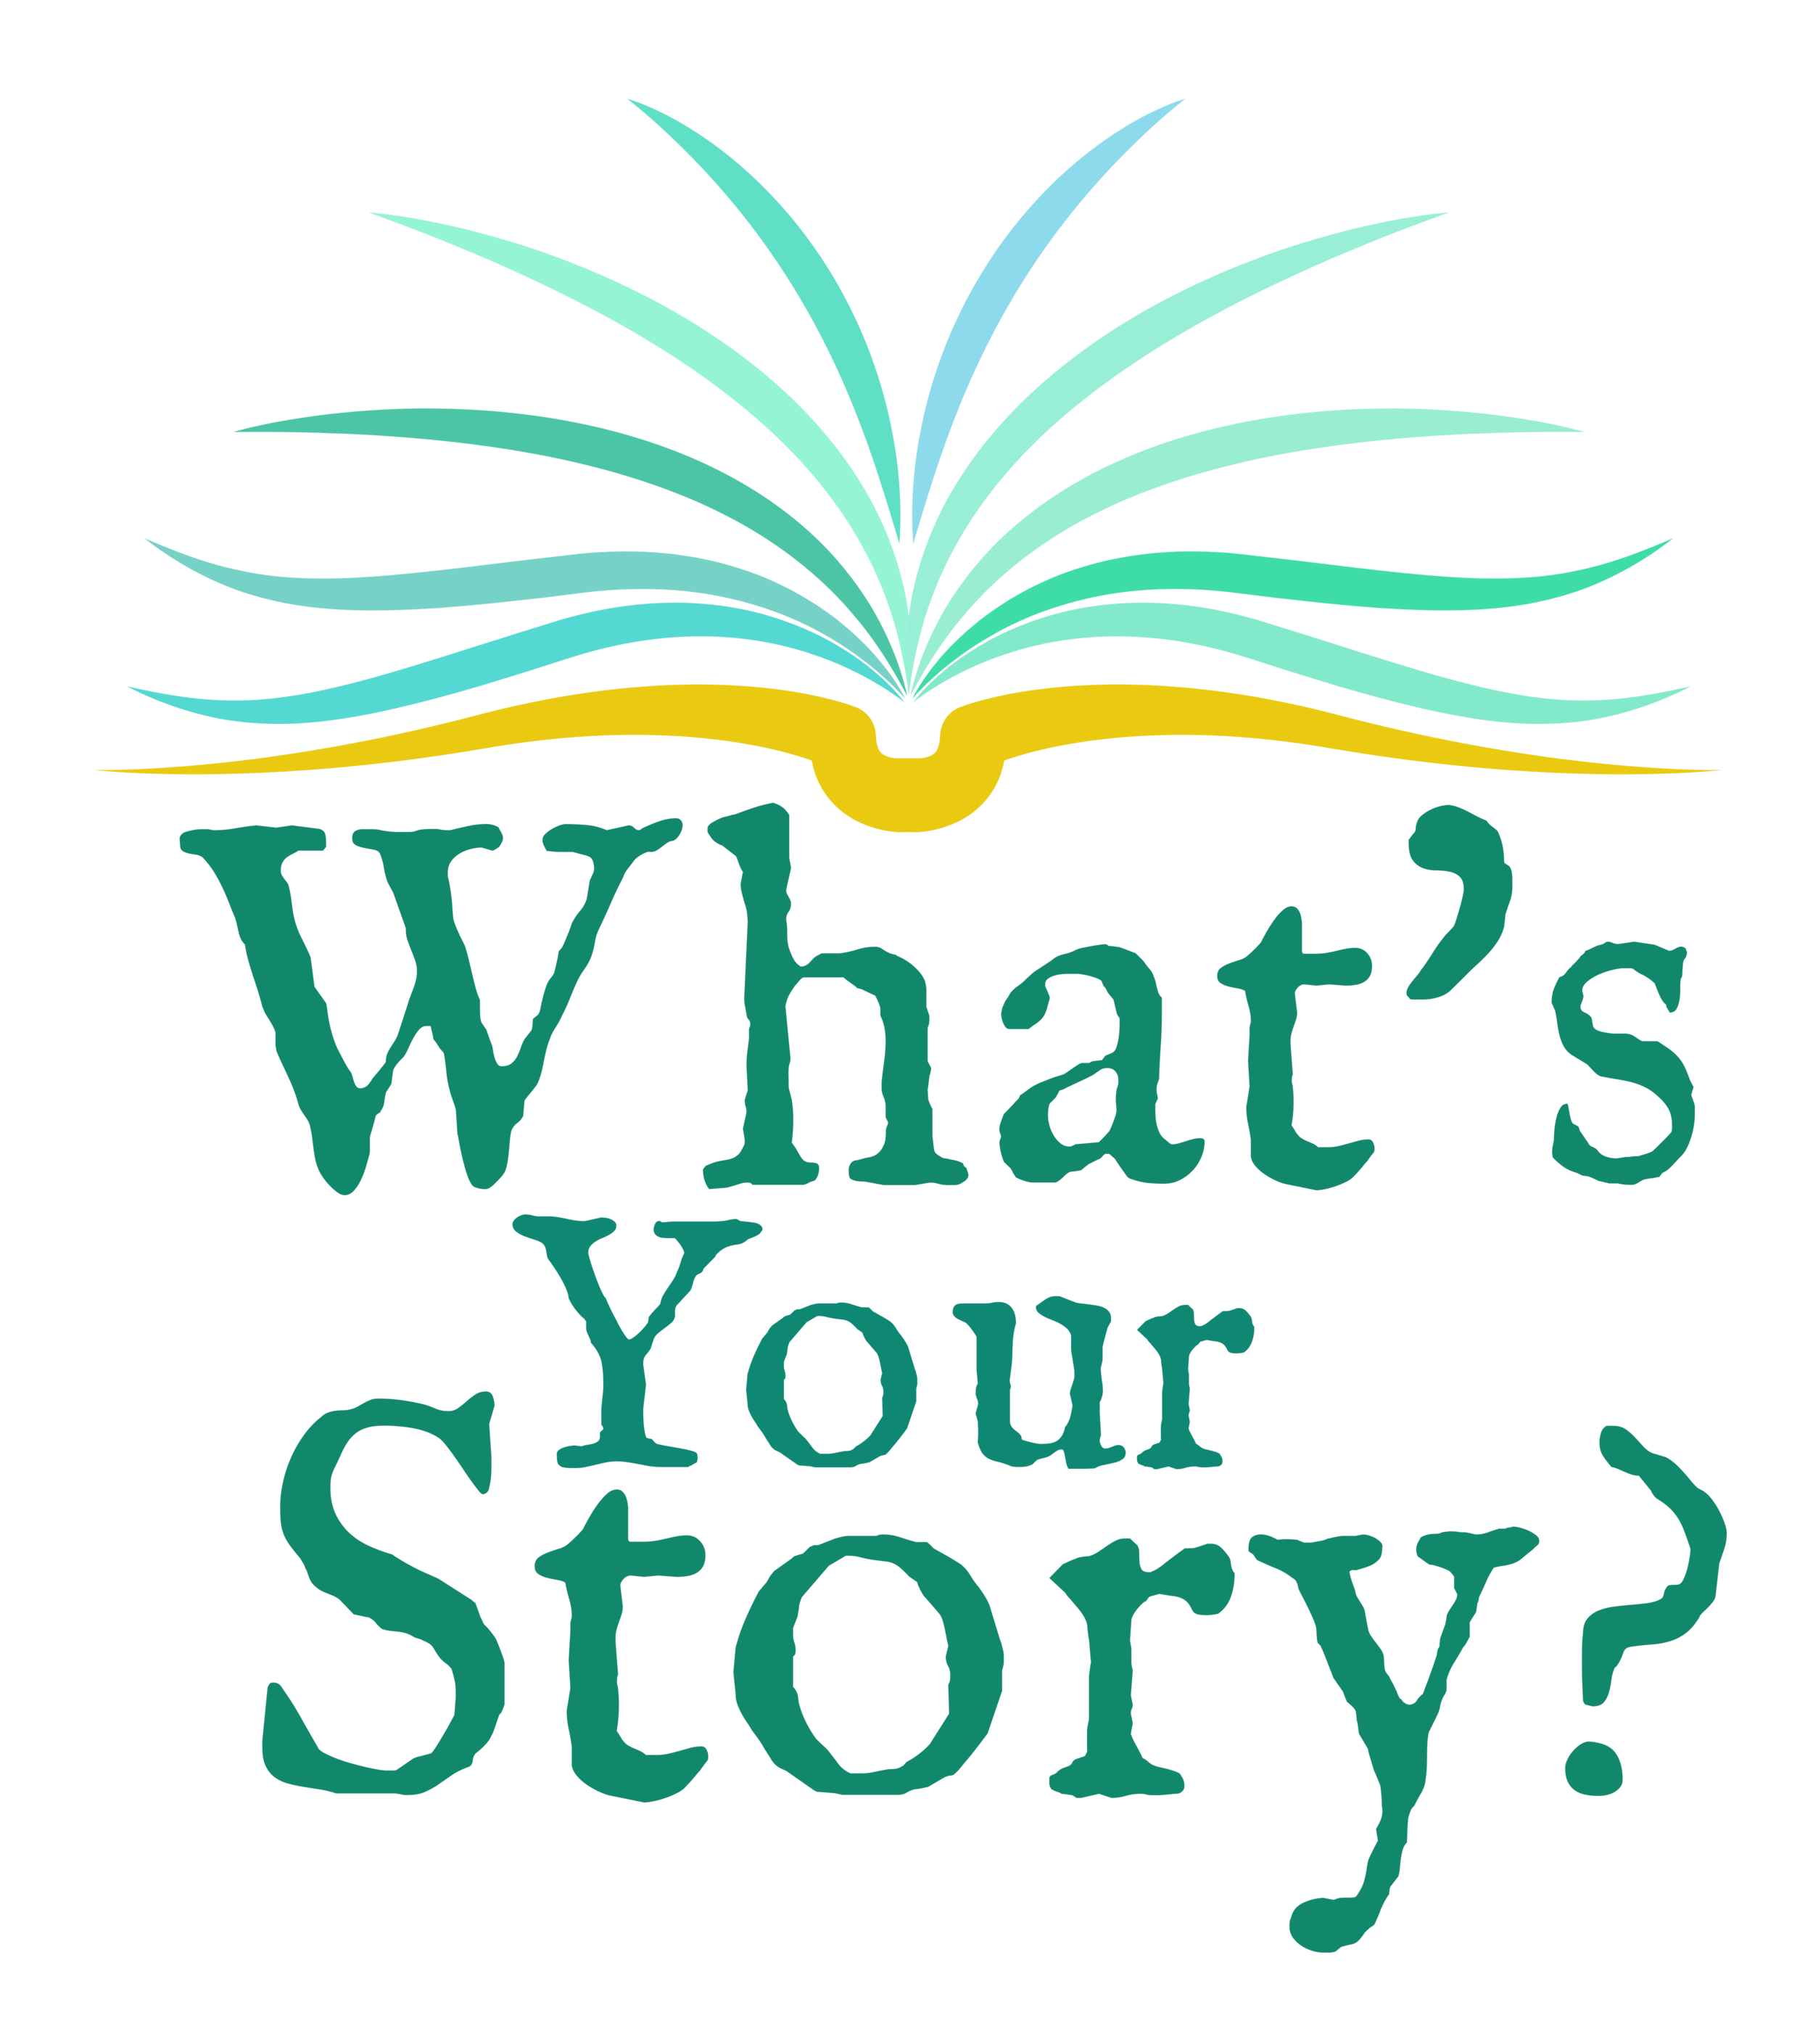 logo whats your story.png